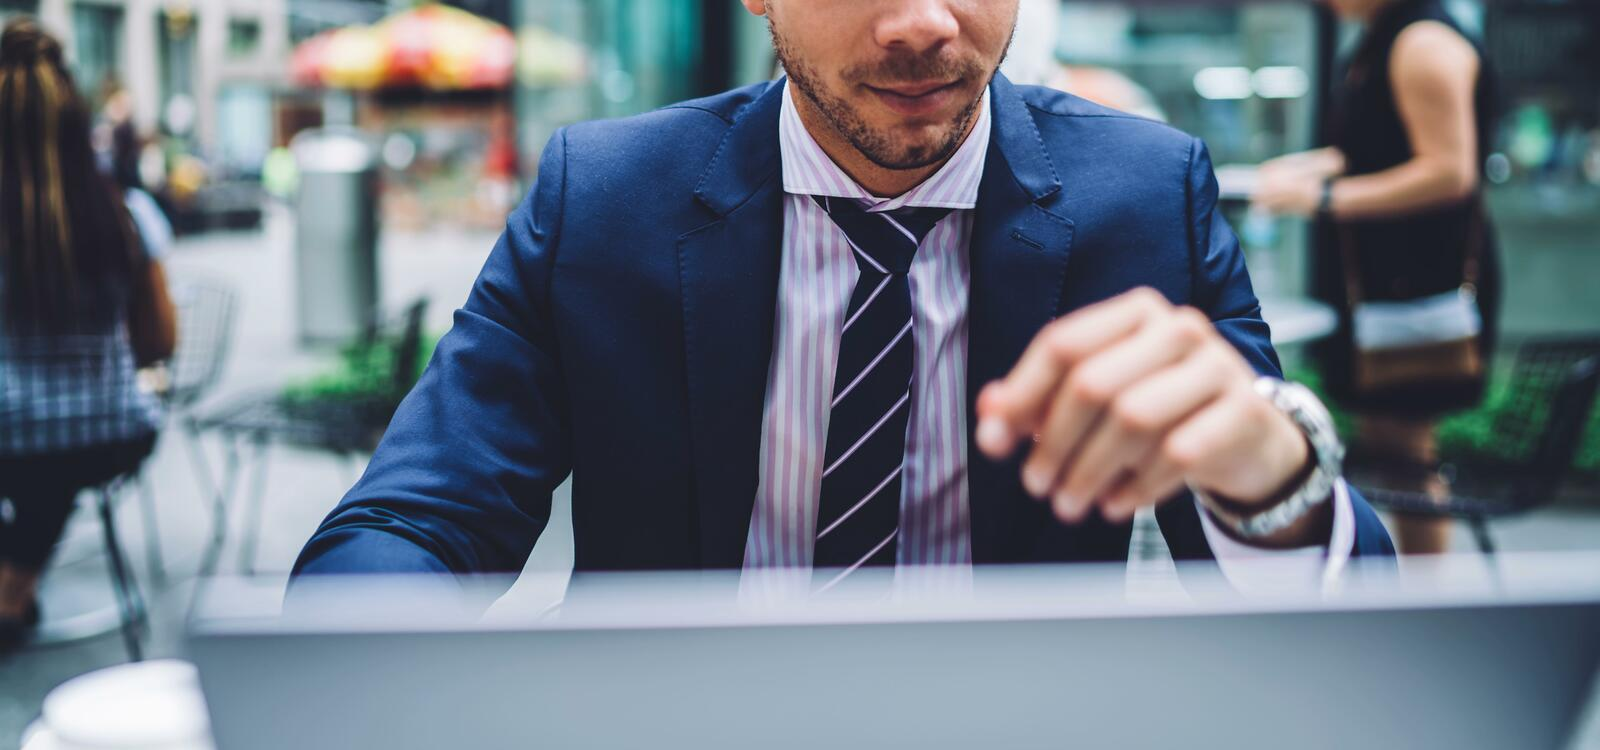 A man sits in front of a laptop with a navy blue sui, striped lavender shirt and a navy blue tie to match